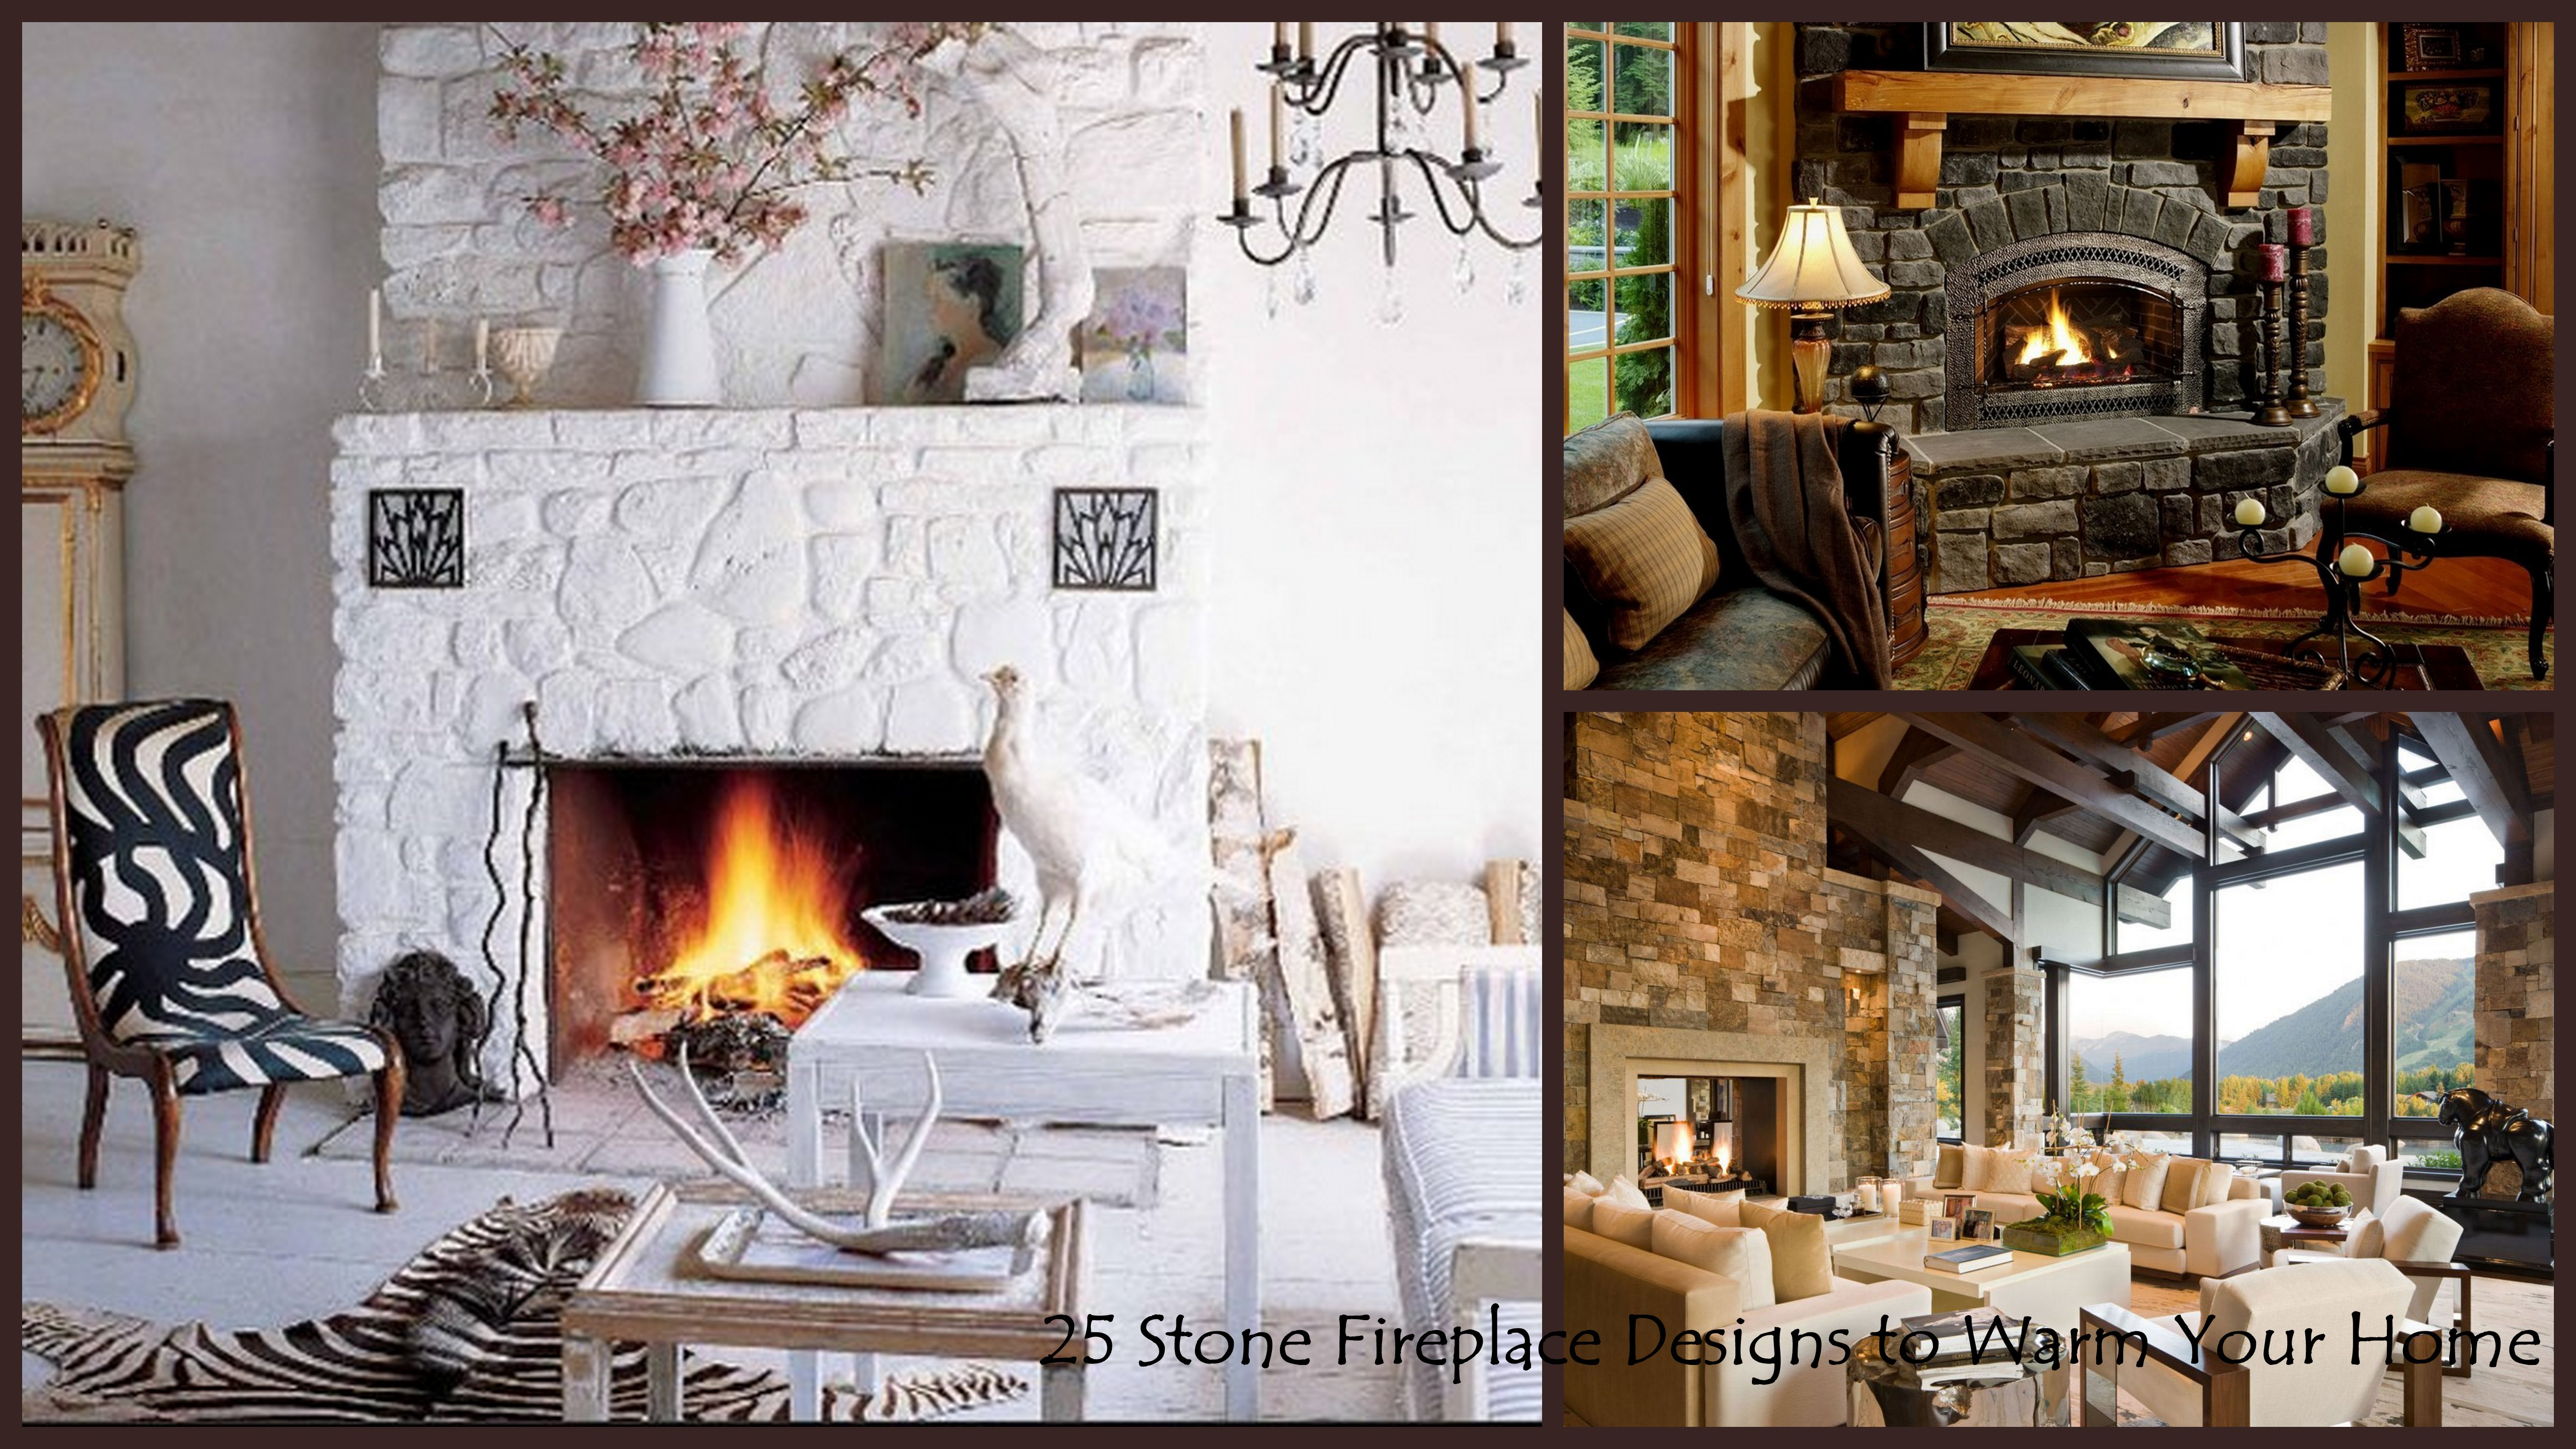 25 interior stone fireplace designs for Design your home